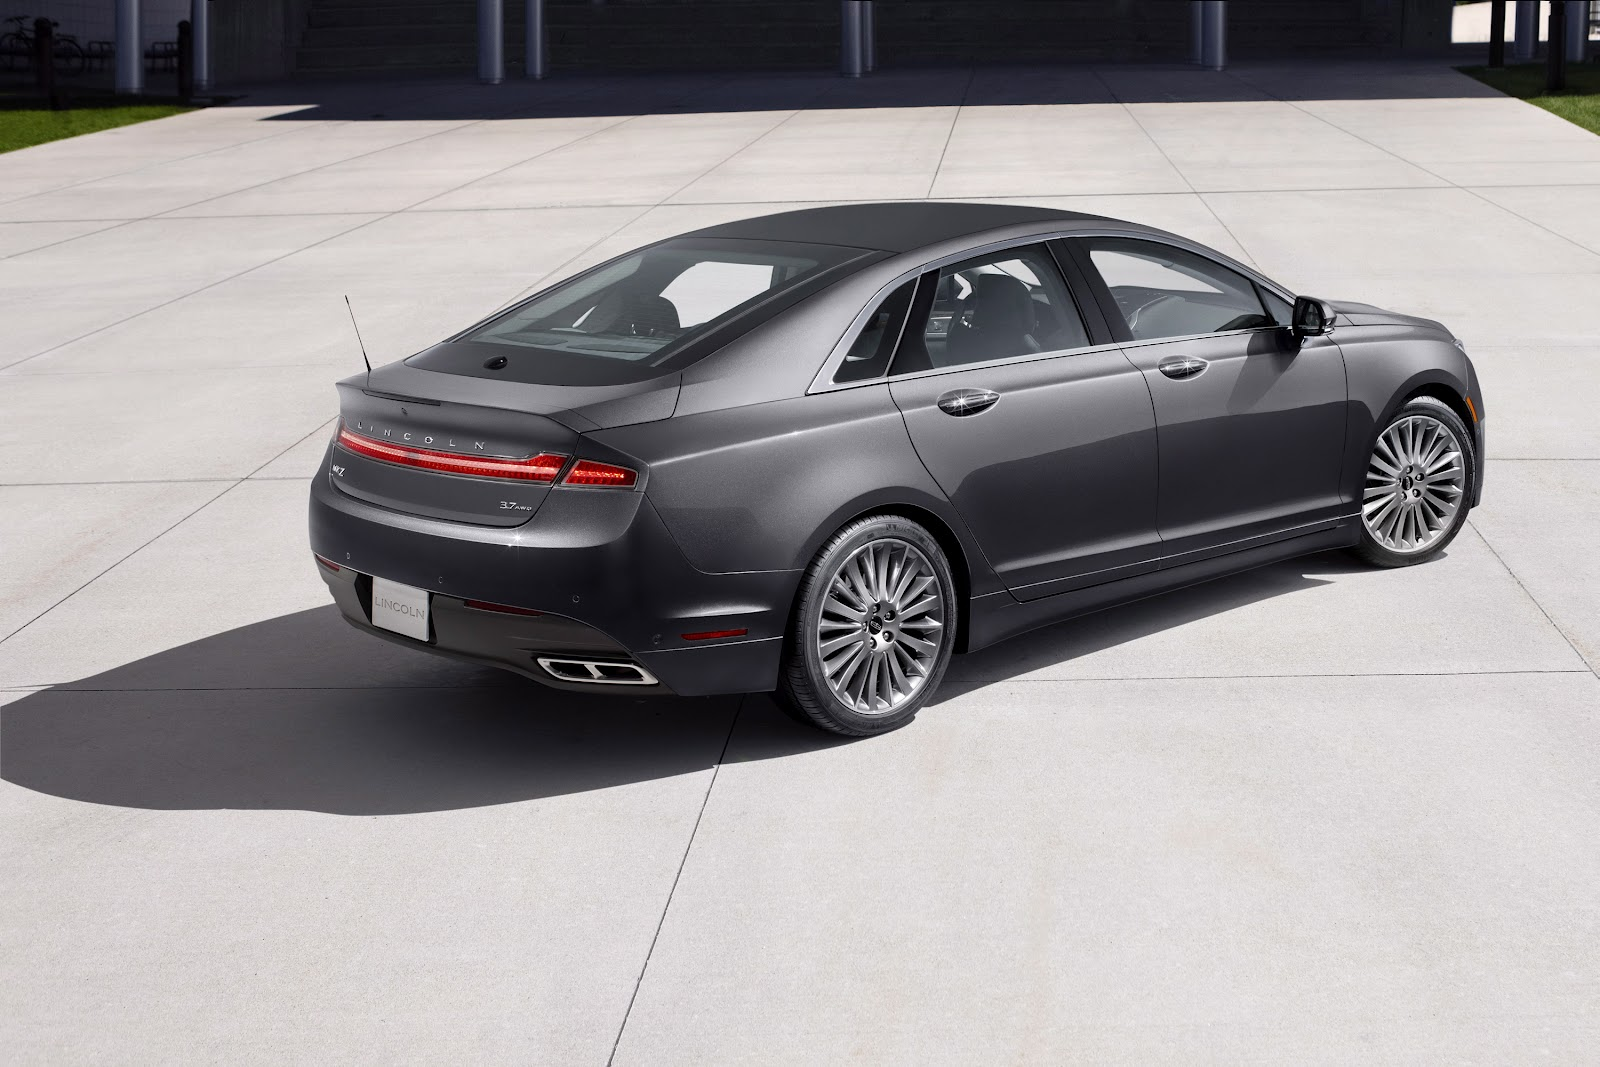 2016 - [Lincoln] MKZ - Page 2 2013+lincoln+mkz+4